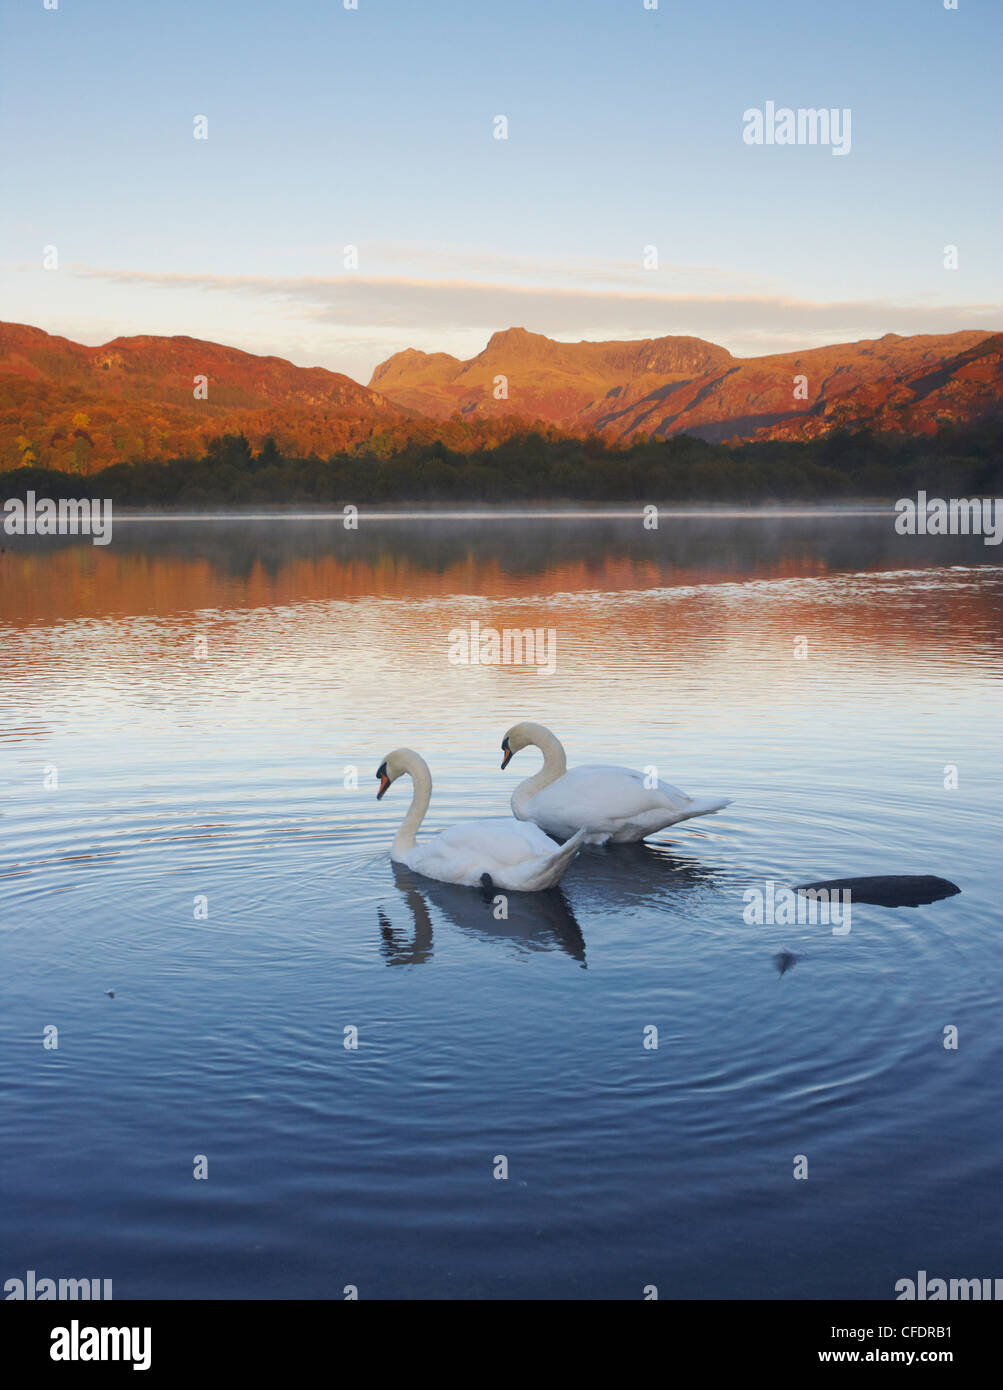 An autumn morning with swans on Elterwater, Lake District National Park, Cumbria, England, United Kingdom, Europe - Stock Image